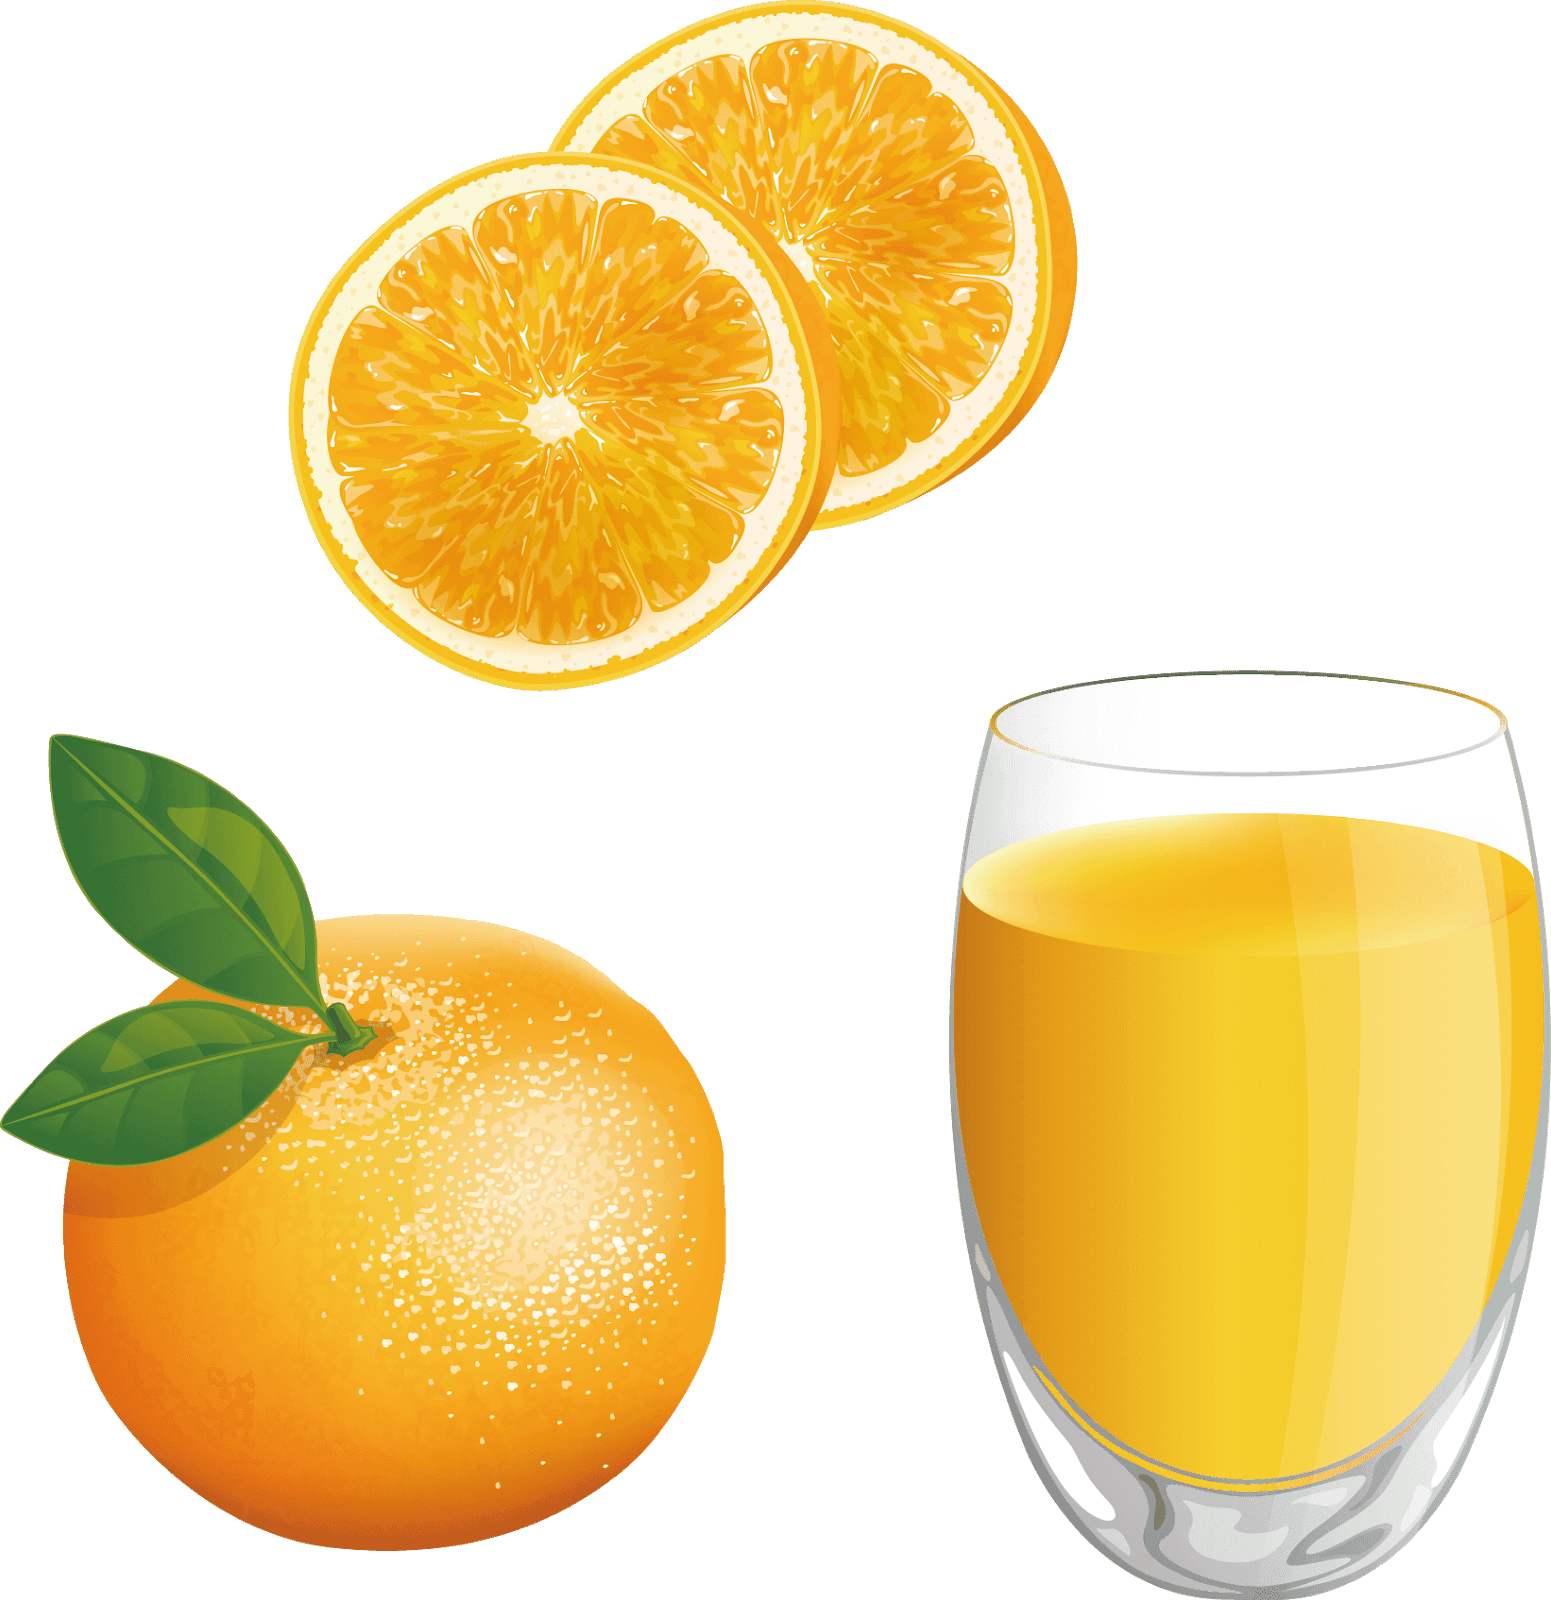 orange juice juice orange orange juice png images and clipart [ 1551 x 1600 Pixel ]